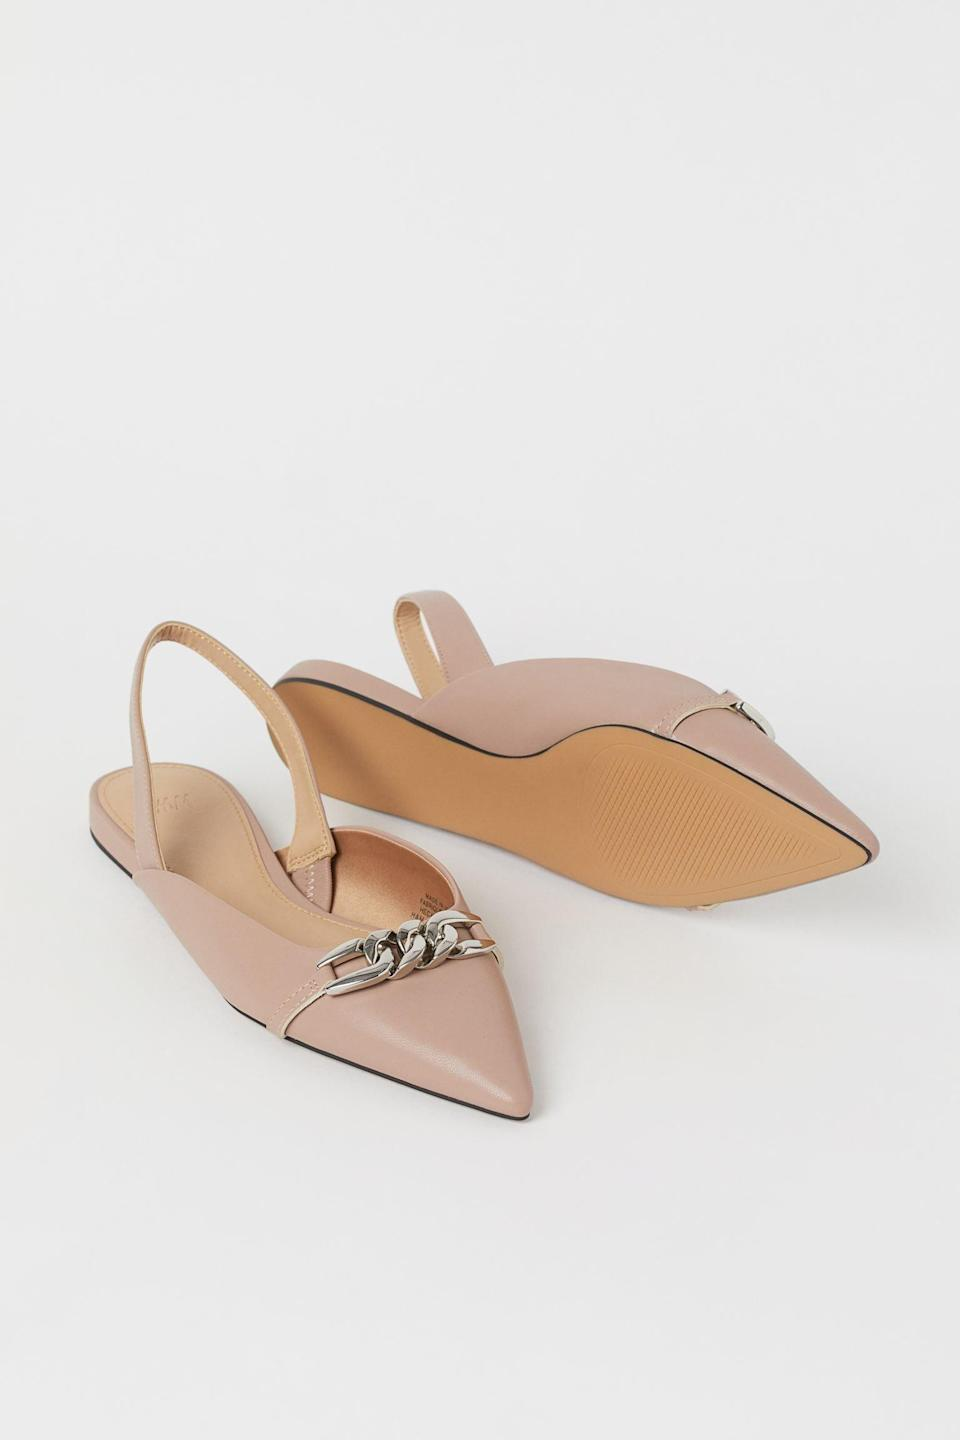 <p>These classic <span>H&amp;M Chain-detail Slingbacks</span> ($16, originally $30) will go well with some pieces in your closet.</p>